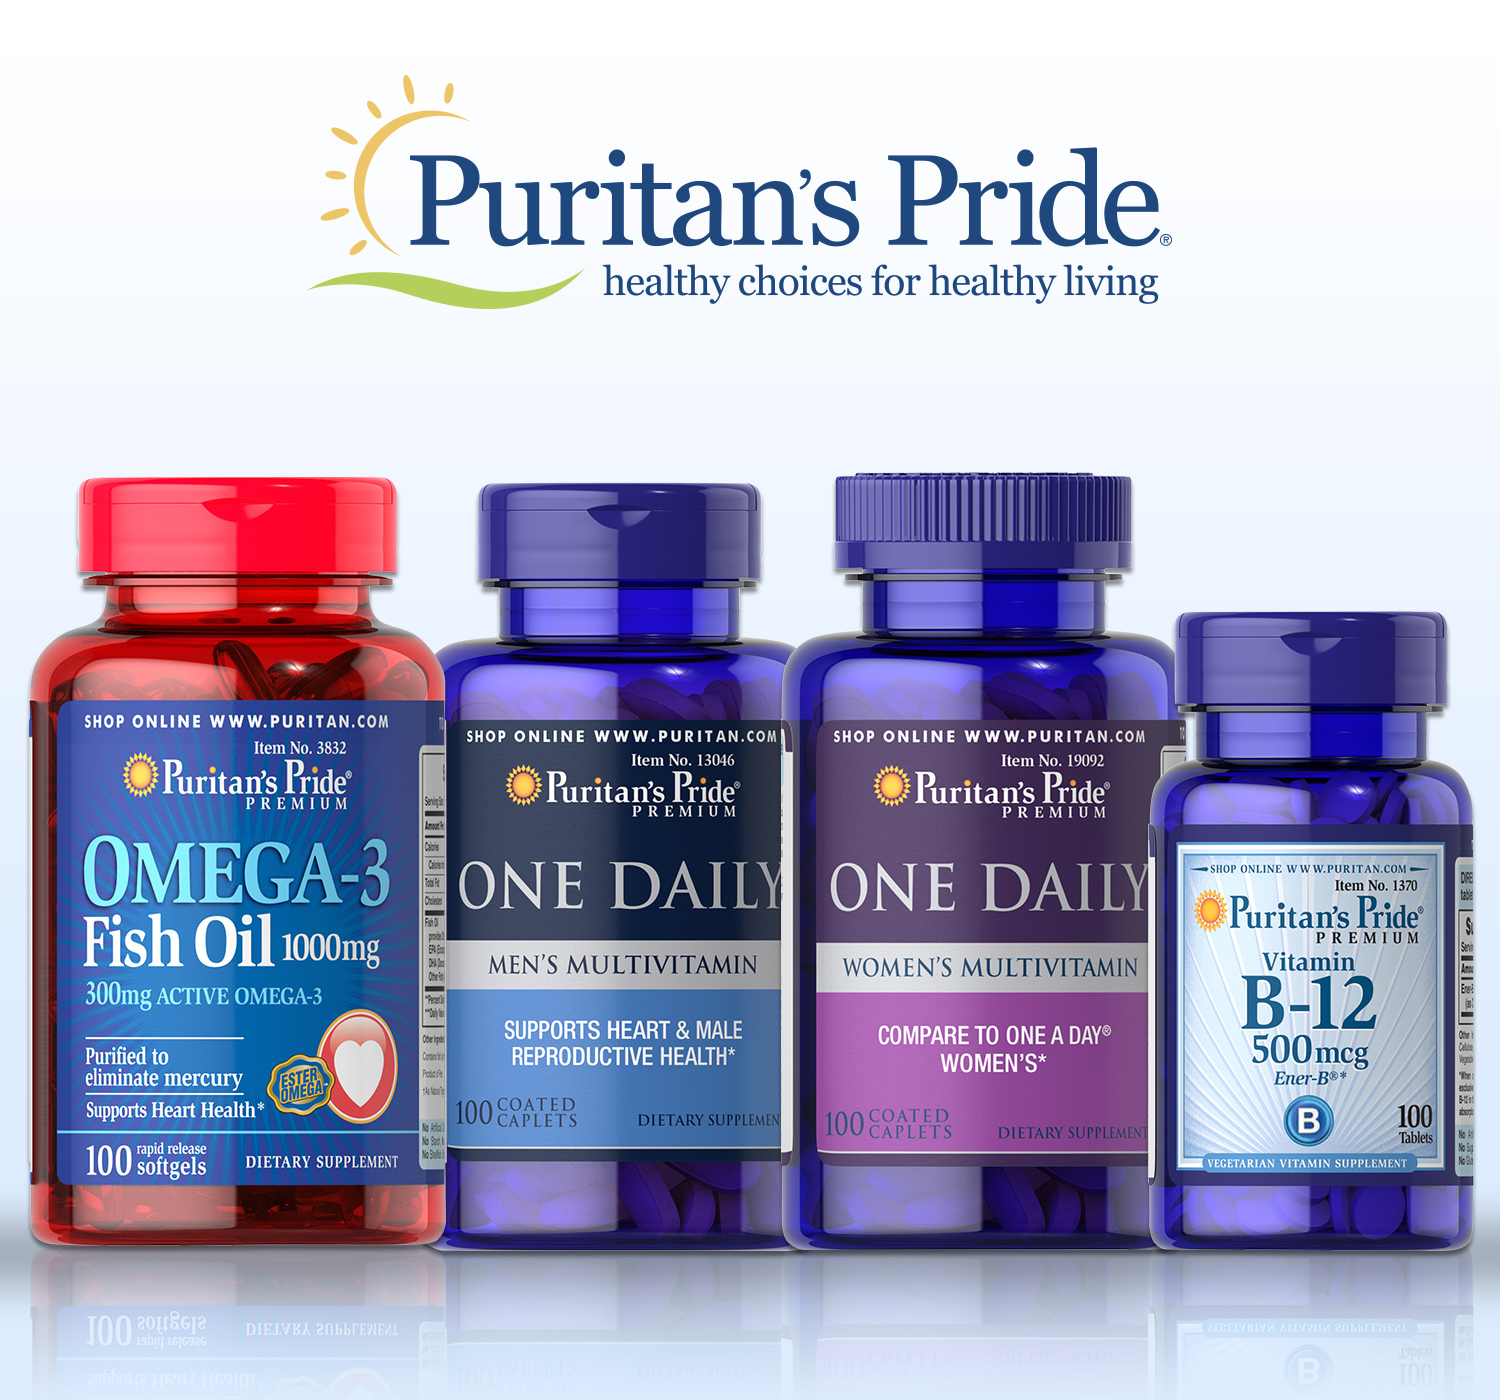 Puritans pride coupon code